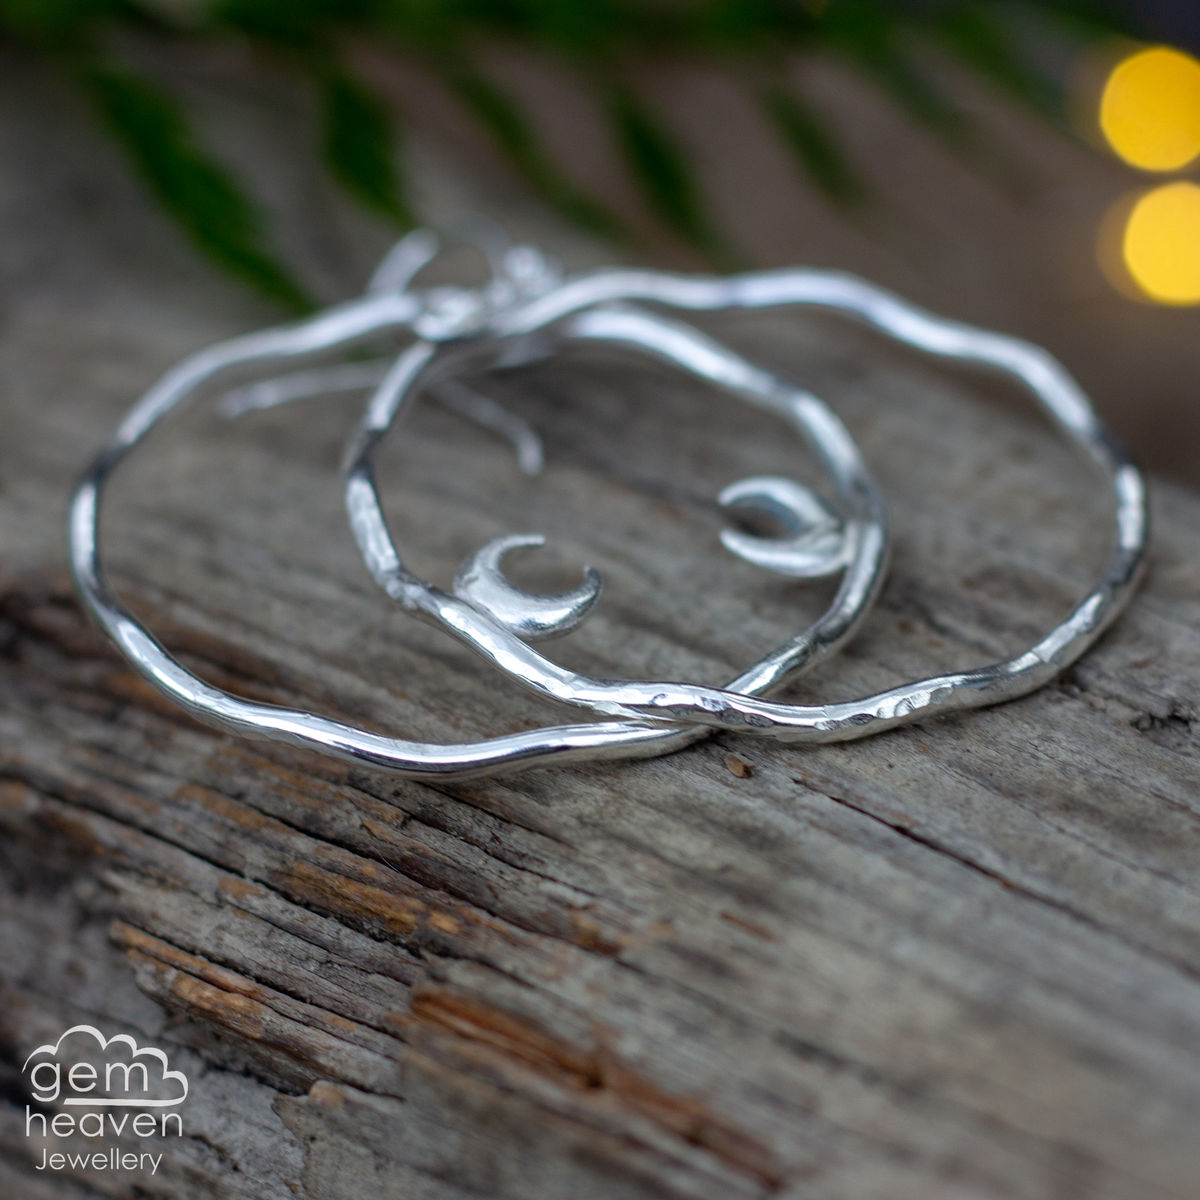 Luna Hoop earrings - product images  of